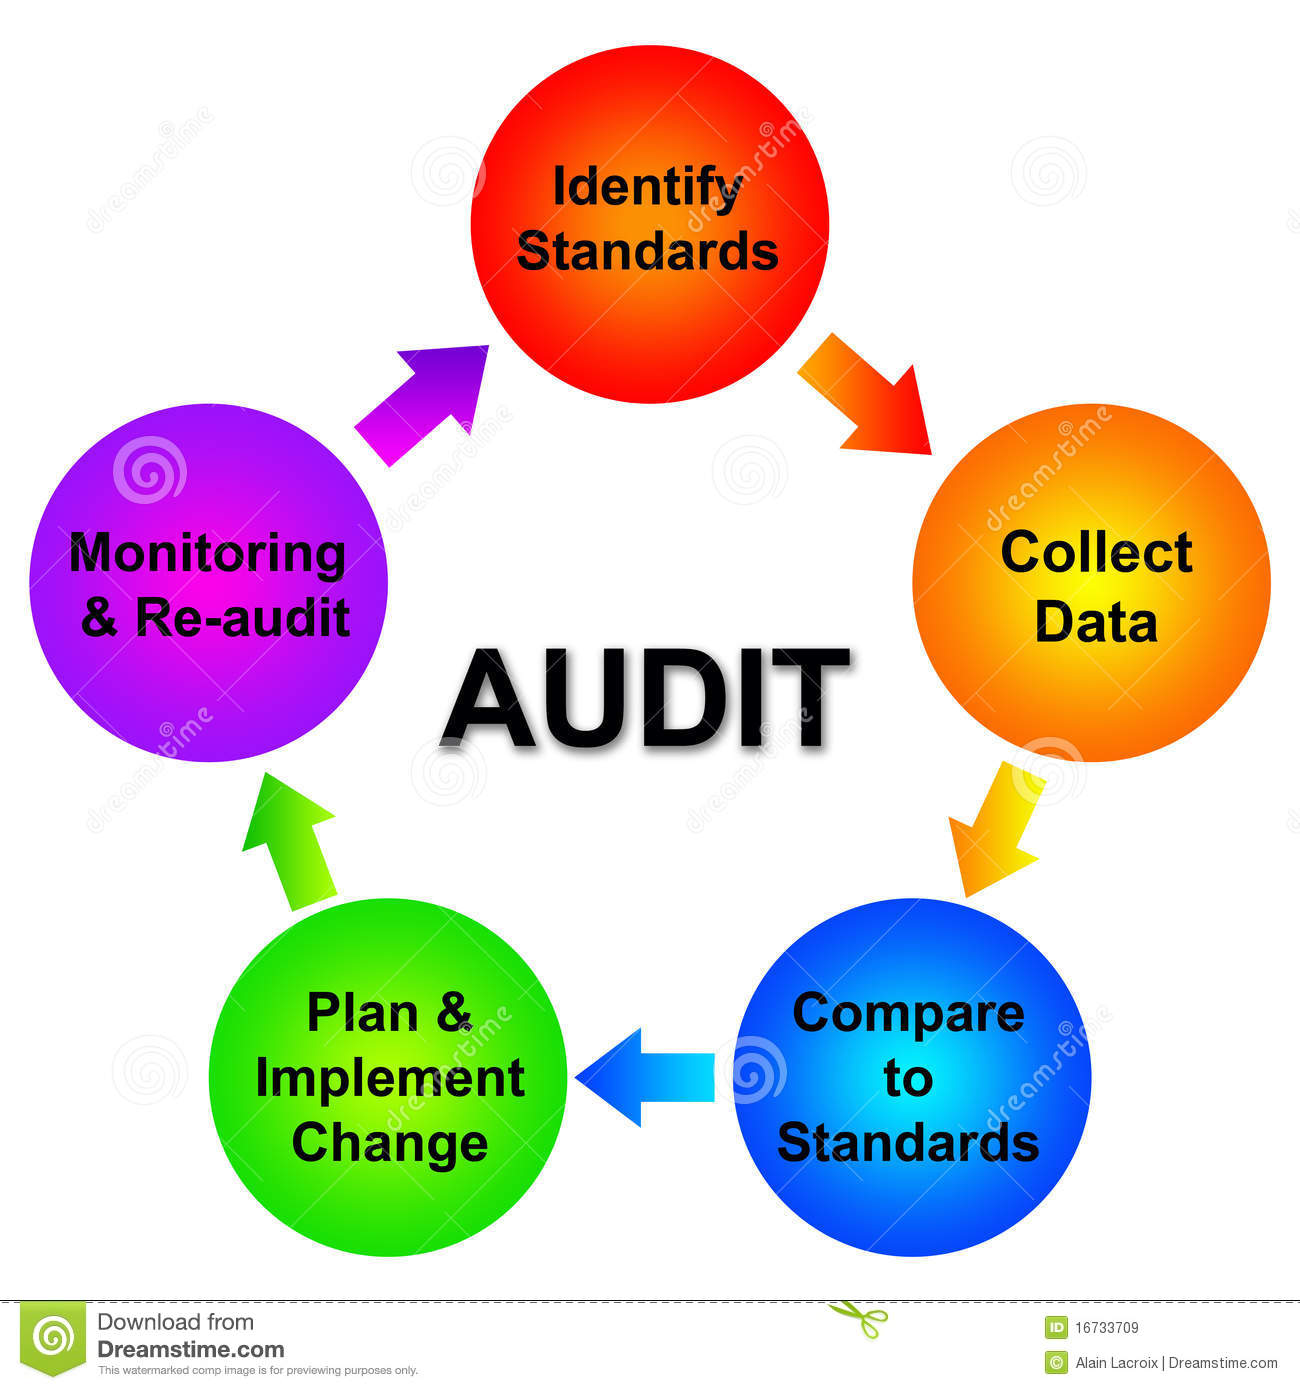 Overview of the different steps of an audit planning.